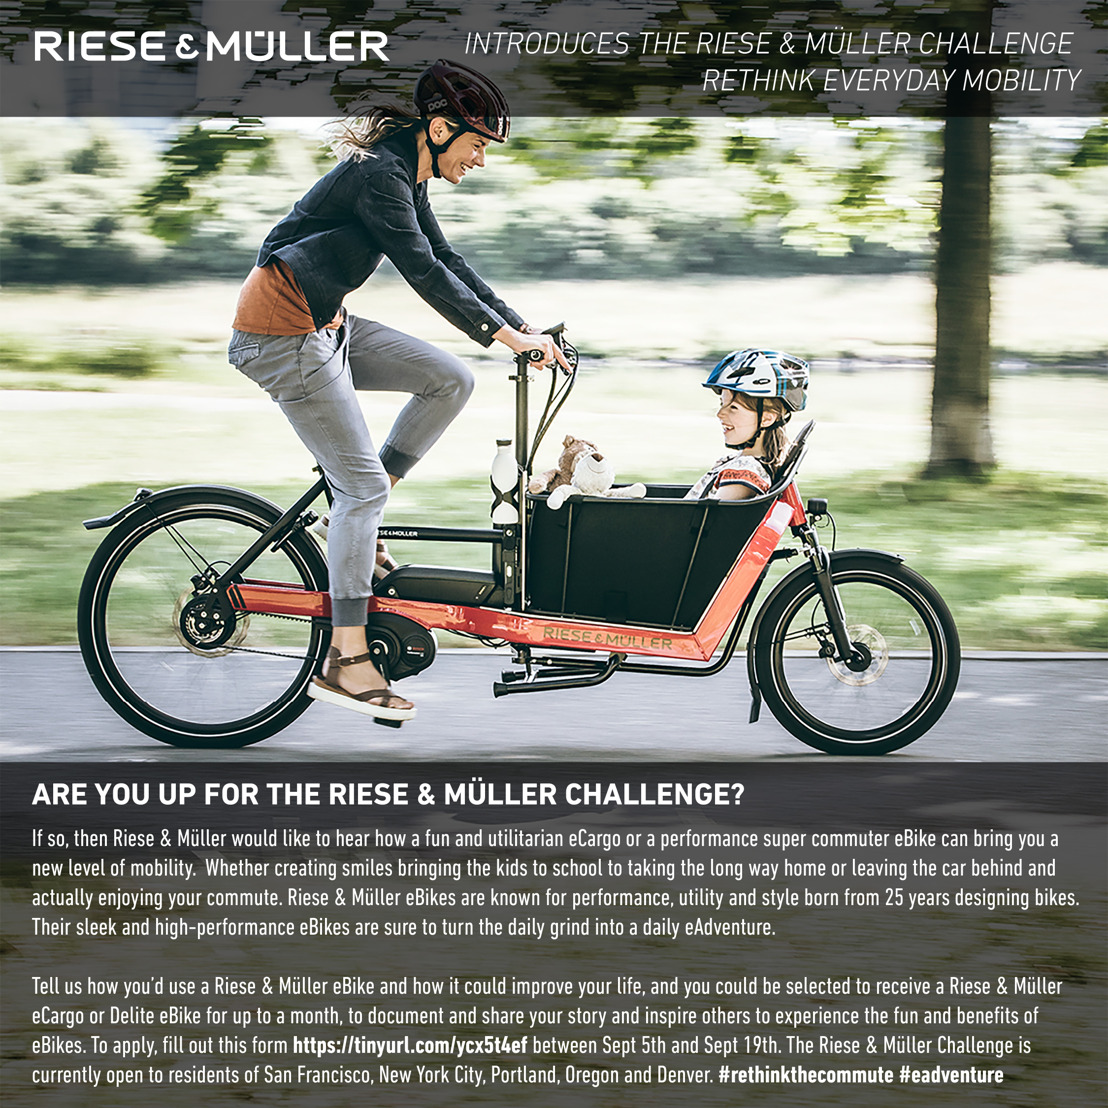 Riese & Müller Introduces the Riese & Müller Challenge